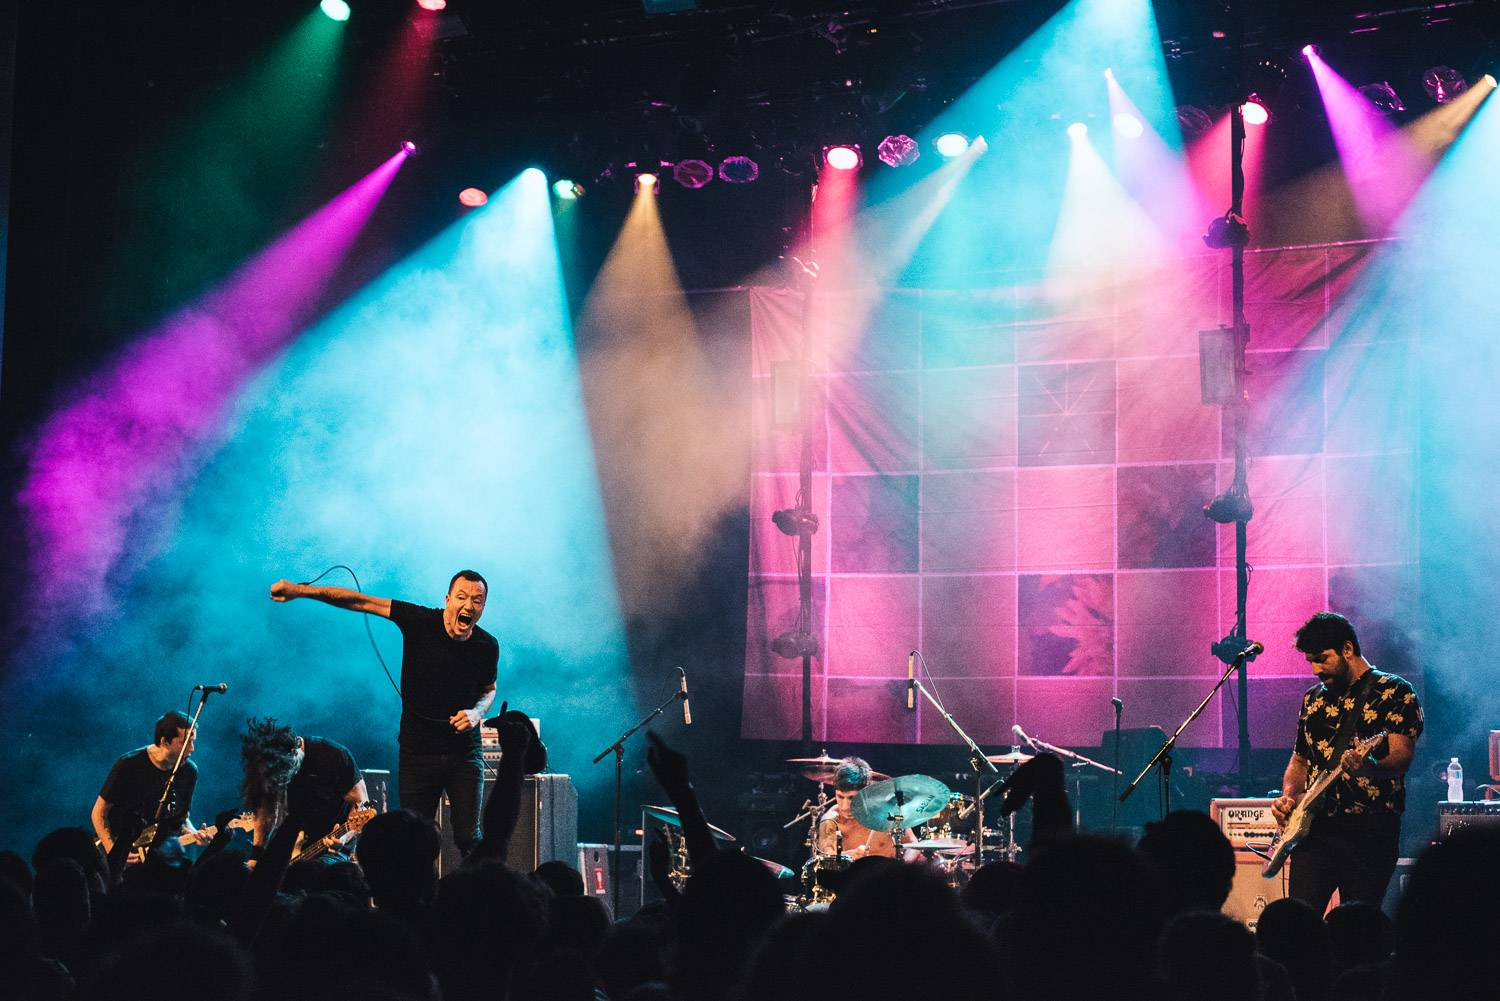 Touche Amore at the Vogue Theatre, Vancouver, Sept 15 2017. Pavel Boiko photo.